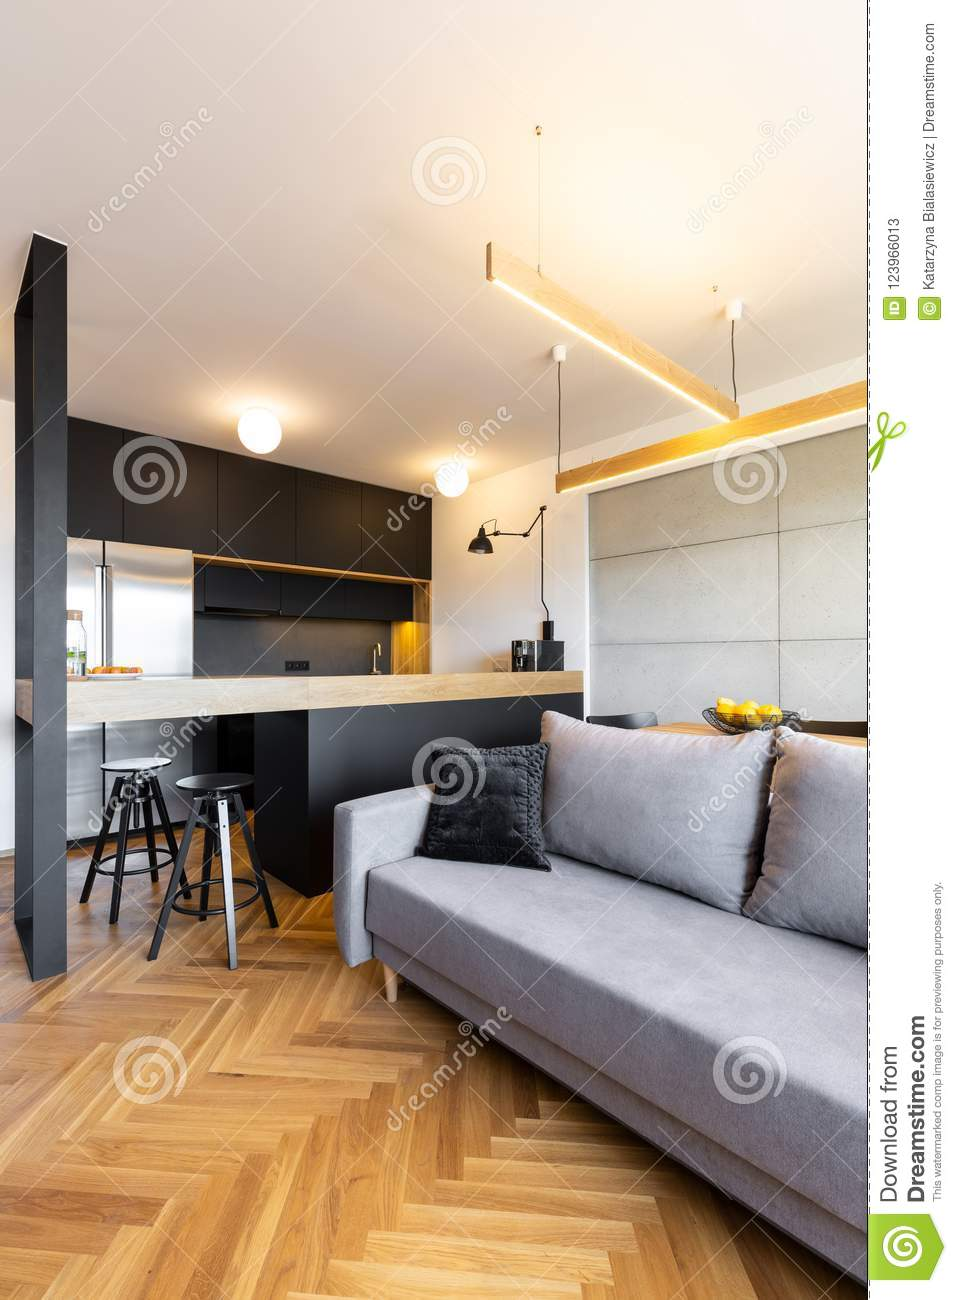 Pillows On Grey Sofa Next To Black Kitchen With Lights In Modern